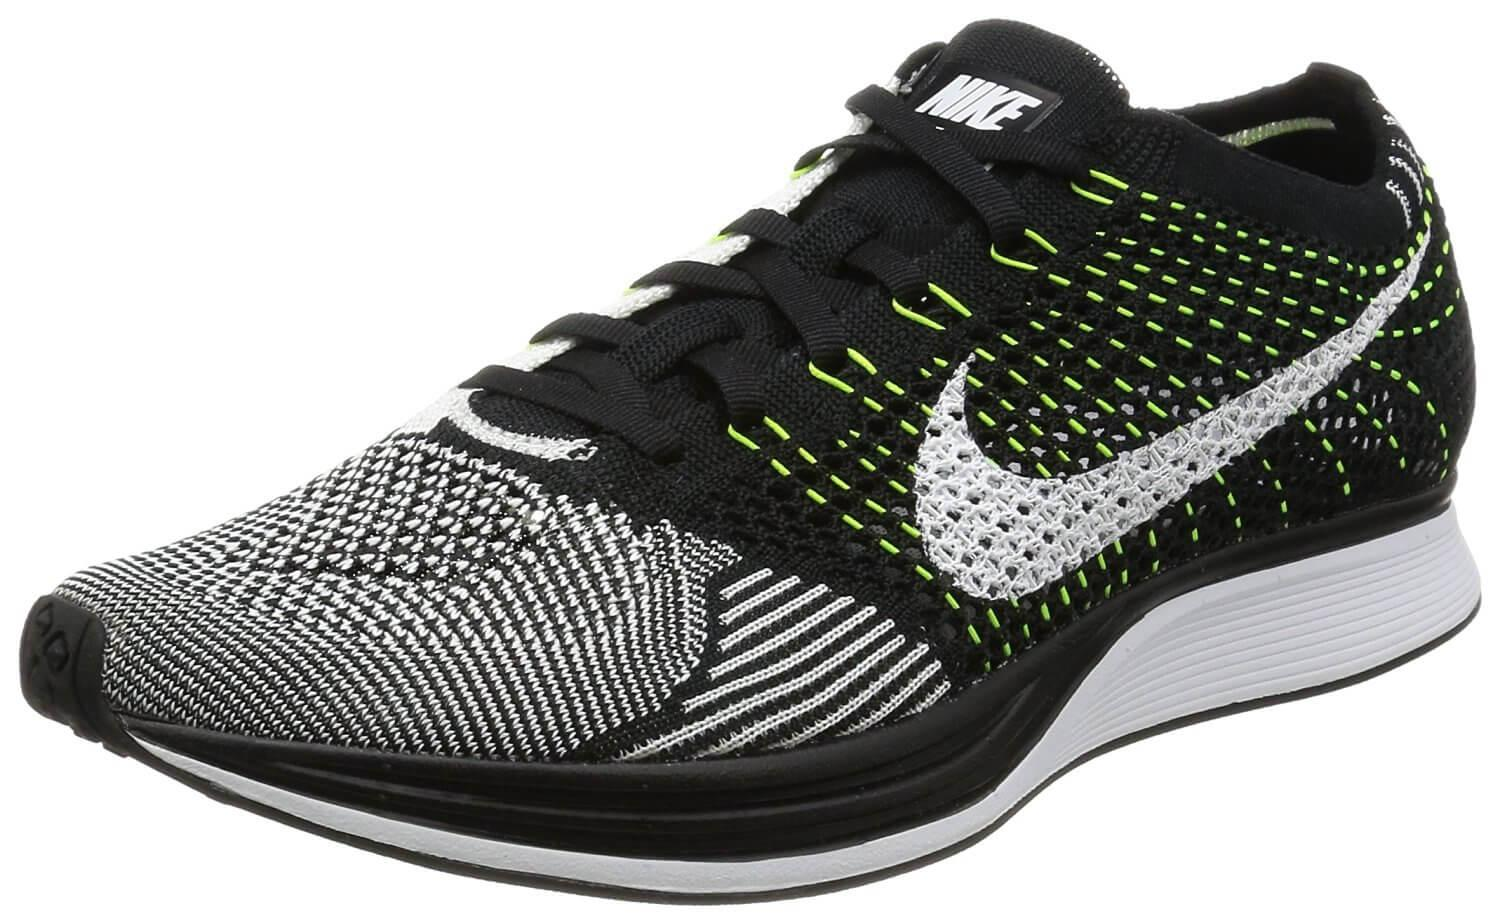 1dd610316d2 Nike Flyknit Racer Reviewed - To Buy or Not in May 2019